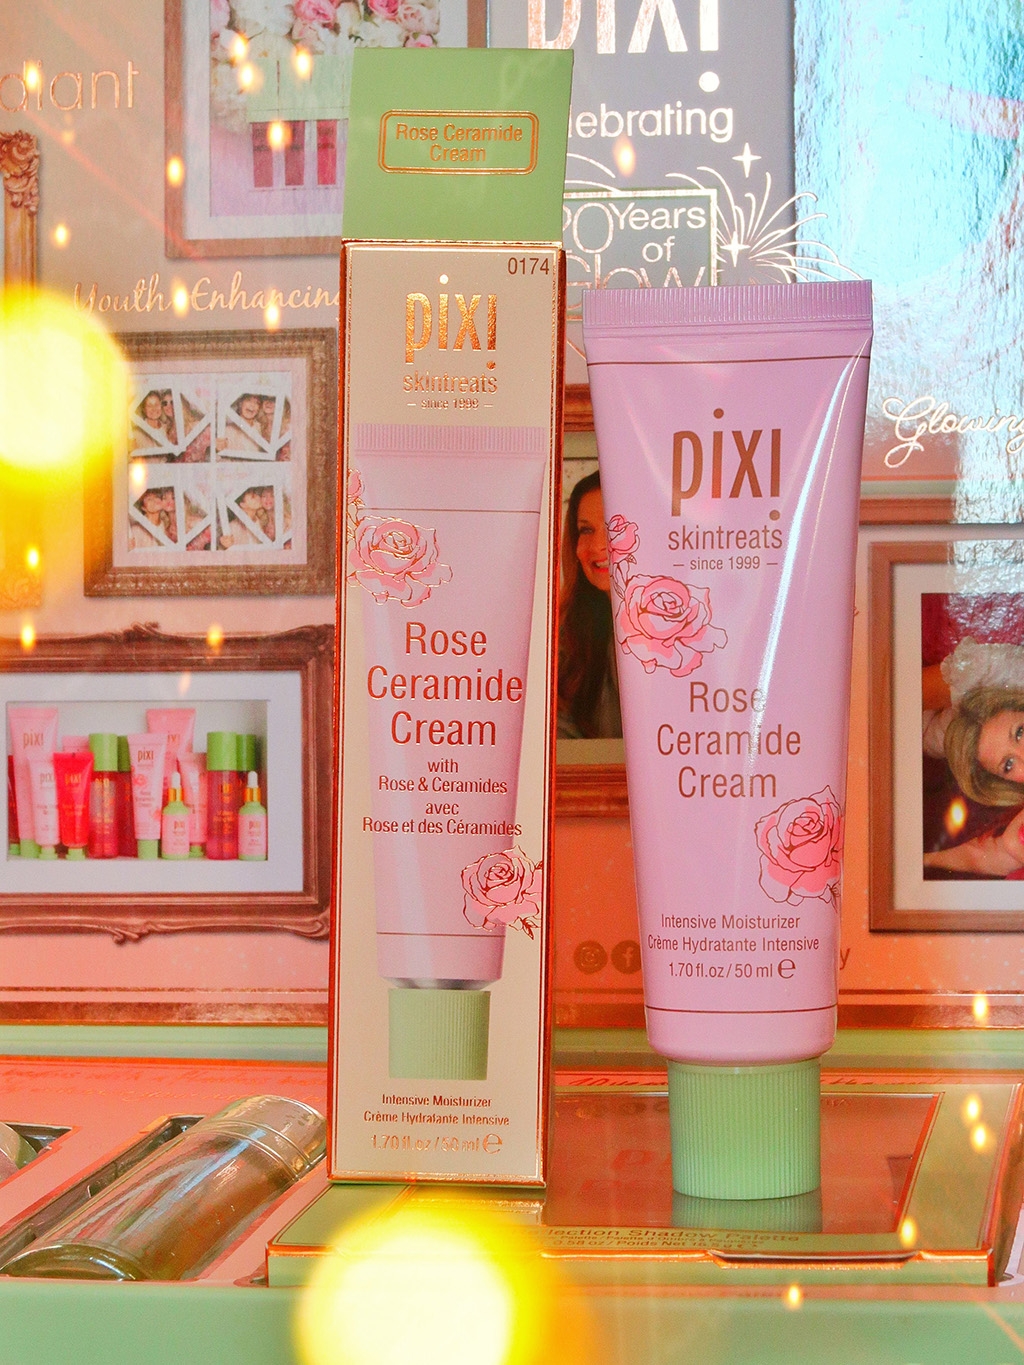 20 years celebrating pixi beauty